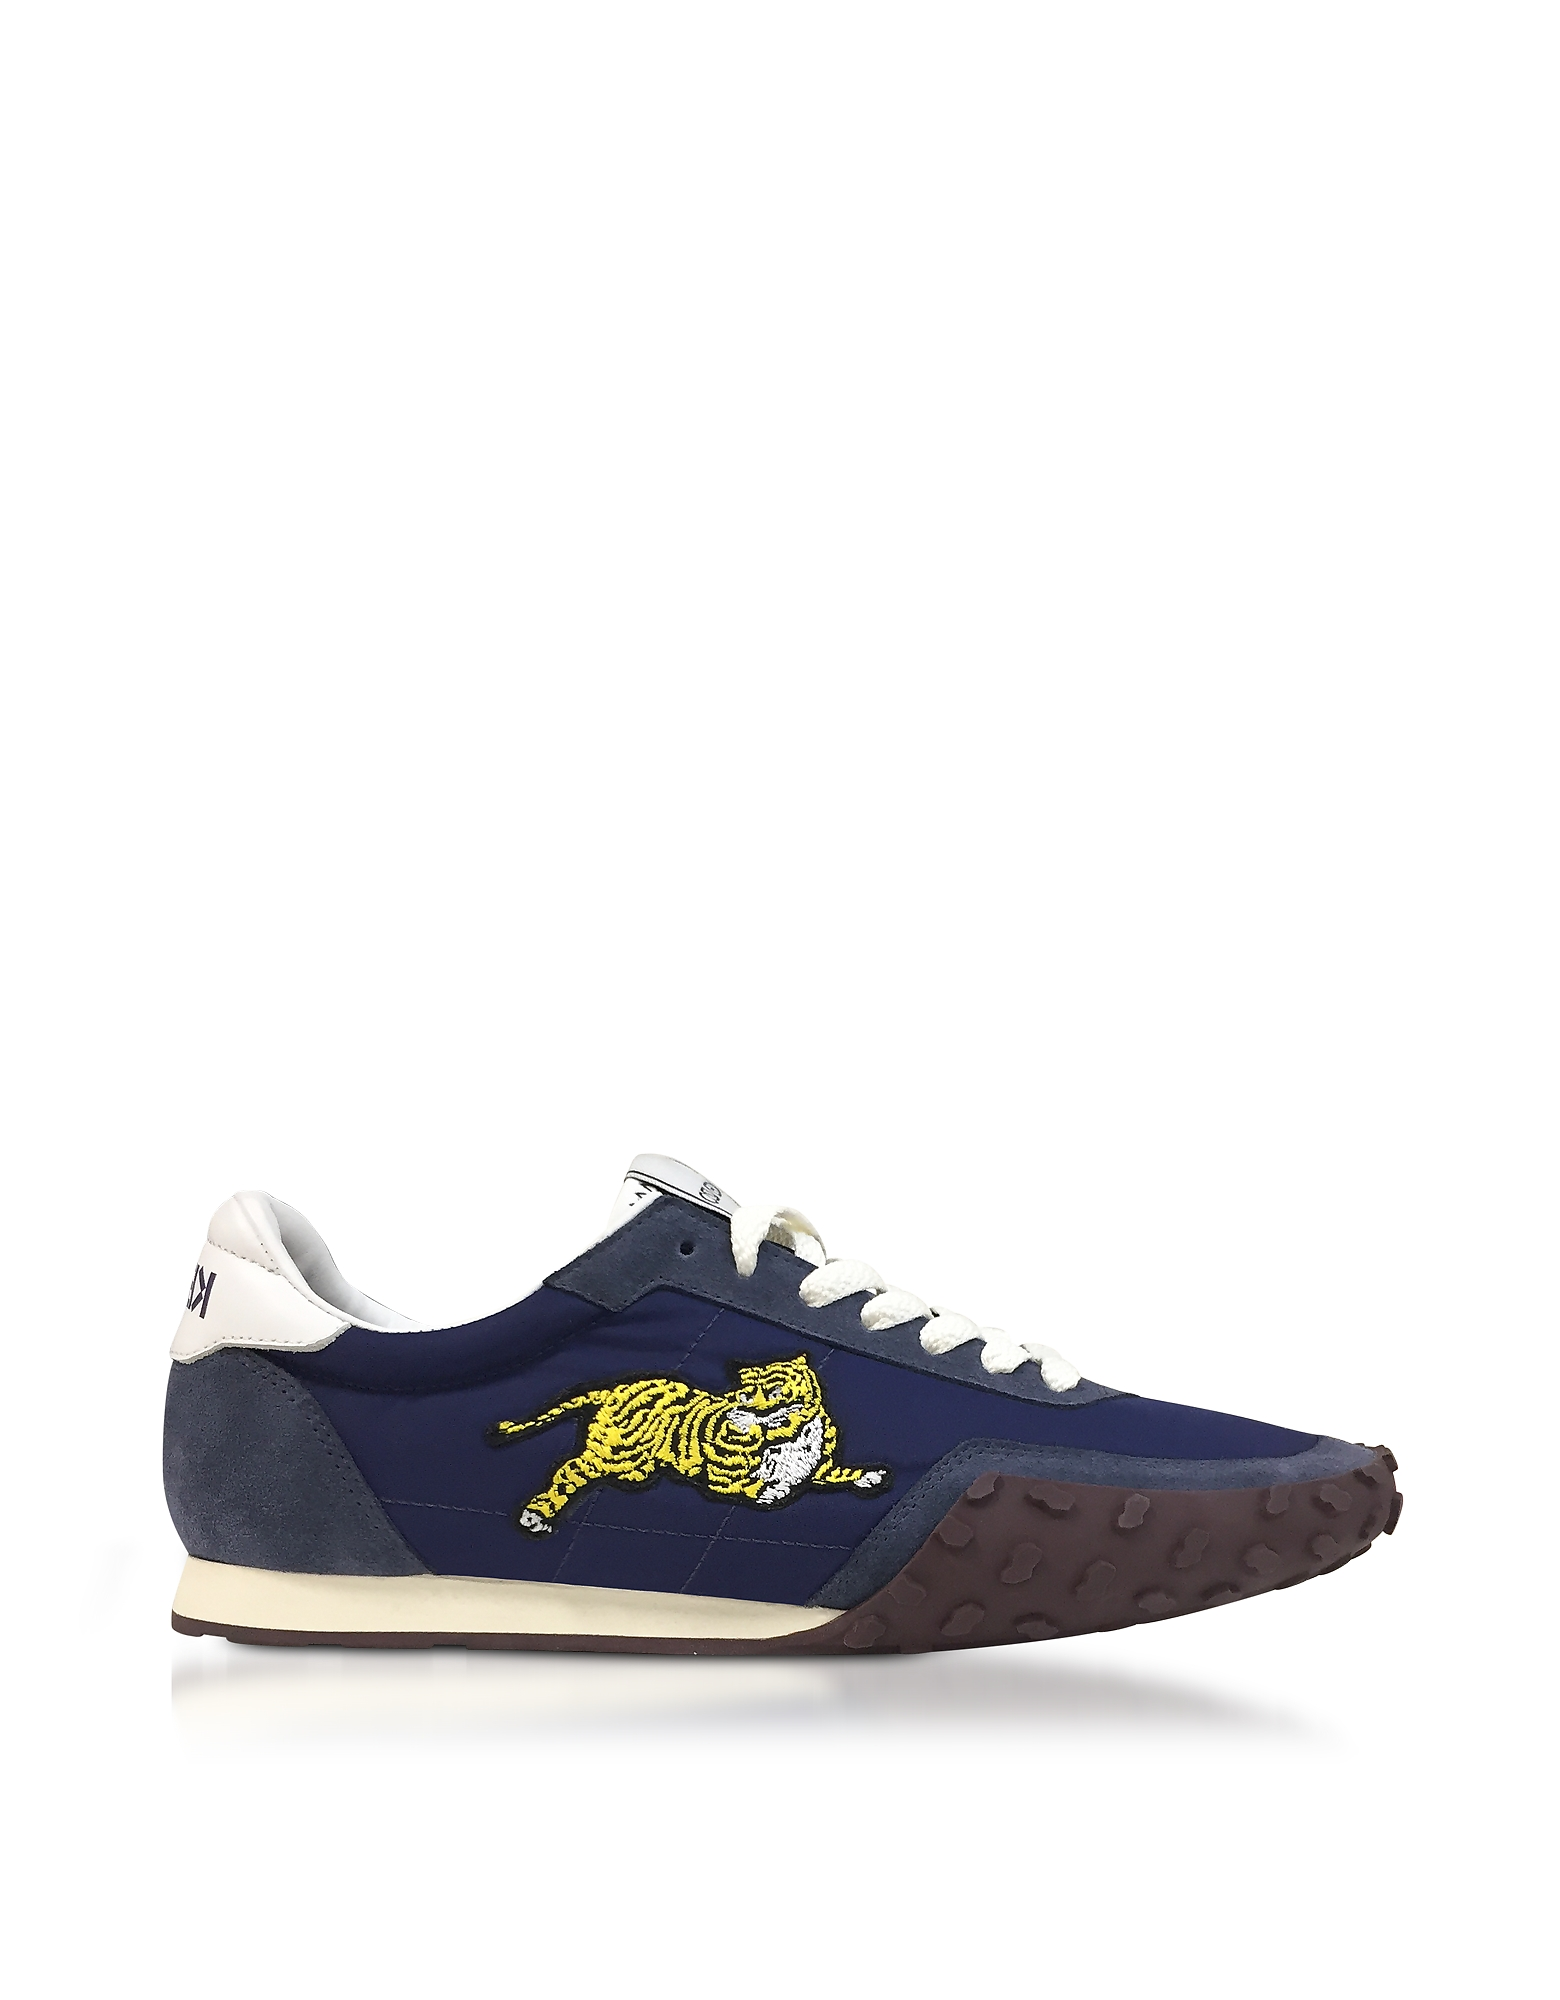 Kenzo Shoes, Navy Blue Nylon and Suede Kenzo Move Men's Sneakers